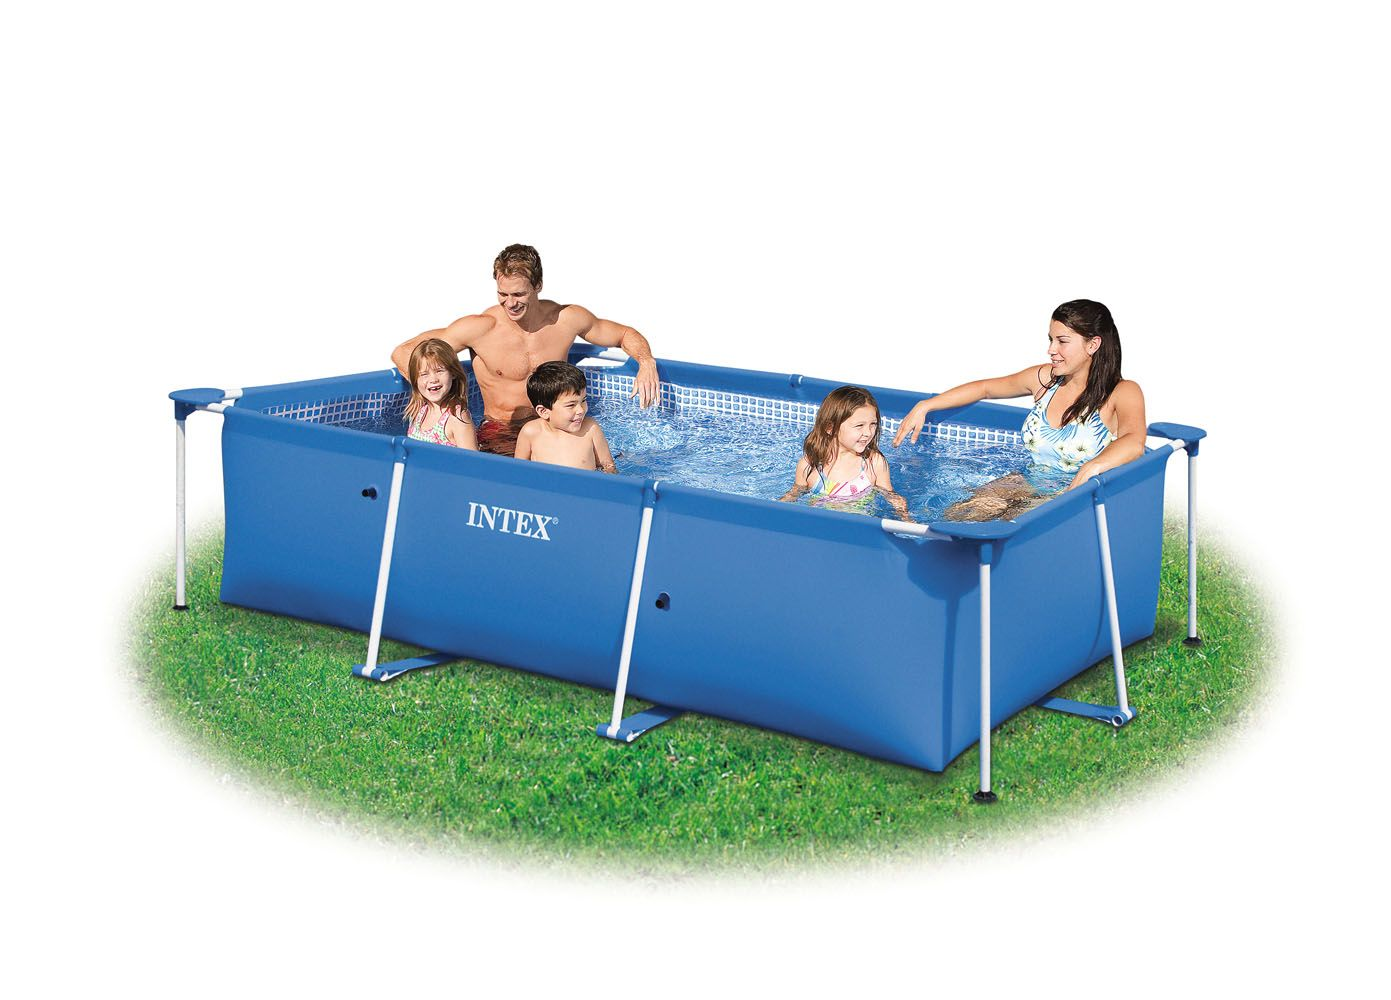 Piscine rectangulaire hors sol intex intex for Piscine rectangulaire